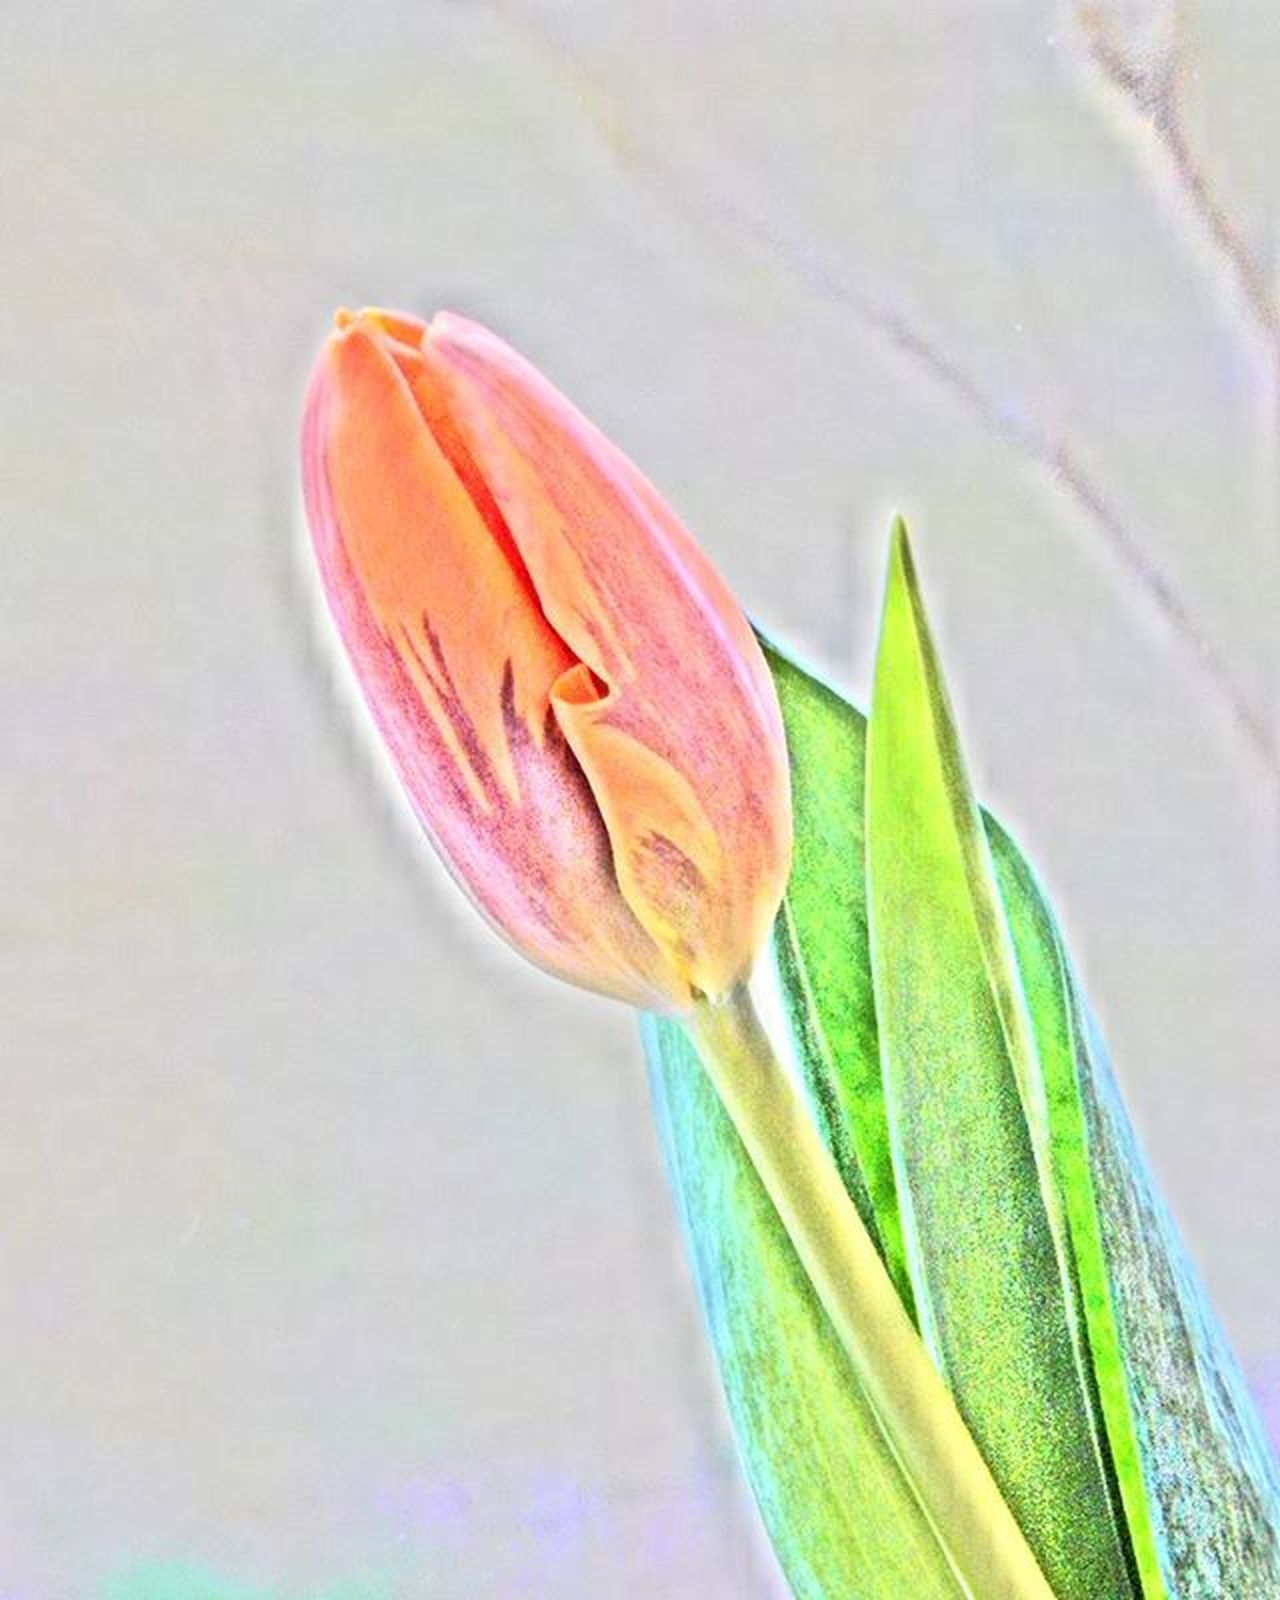 Tulpe Tulip Pavasaris Spring Fotofanatics_flowers_ Loves_flowers_ Loves_life Amateurs_shot Total_shot Ig_myshot Versatile_photo_ Prettiestpastels Flower Ziedi Latvija Fotocatchers Best_free_shot Global_ladies Global_beautiful_pictures